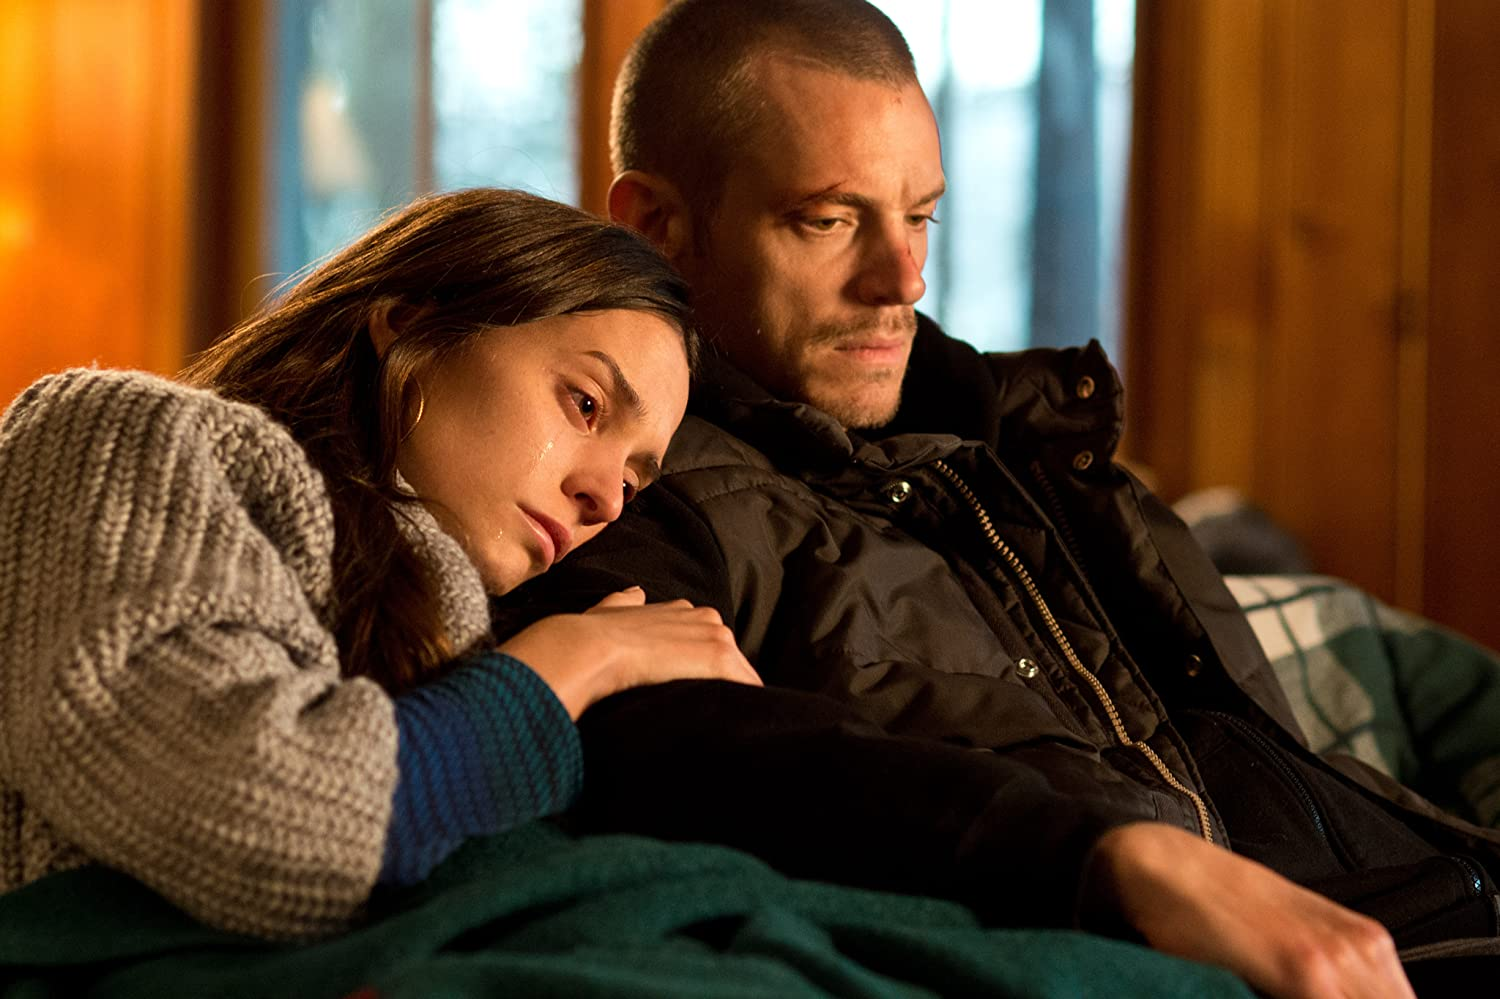 Joel Kinnaman and Genesis Rodriguez in Run All Night (2015)